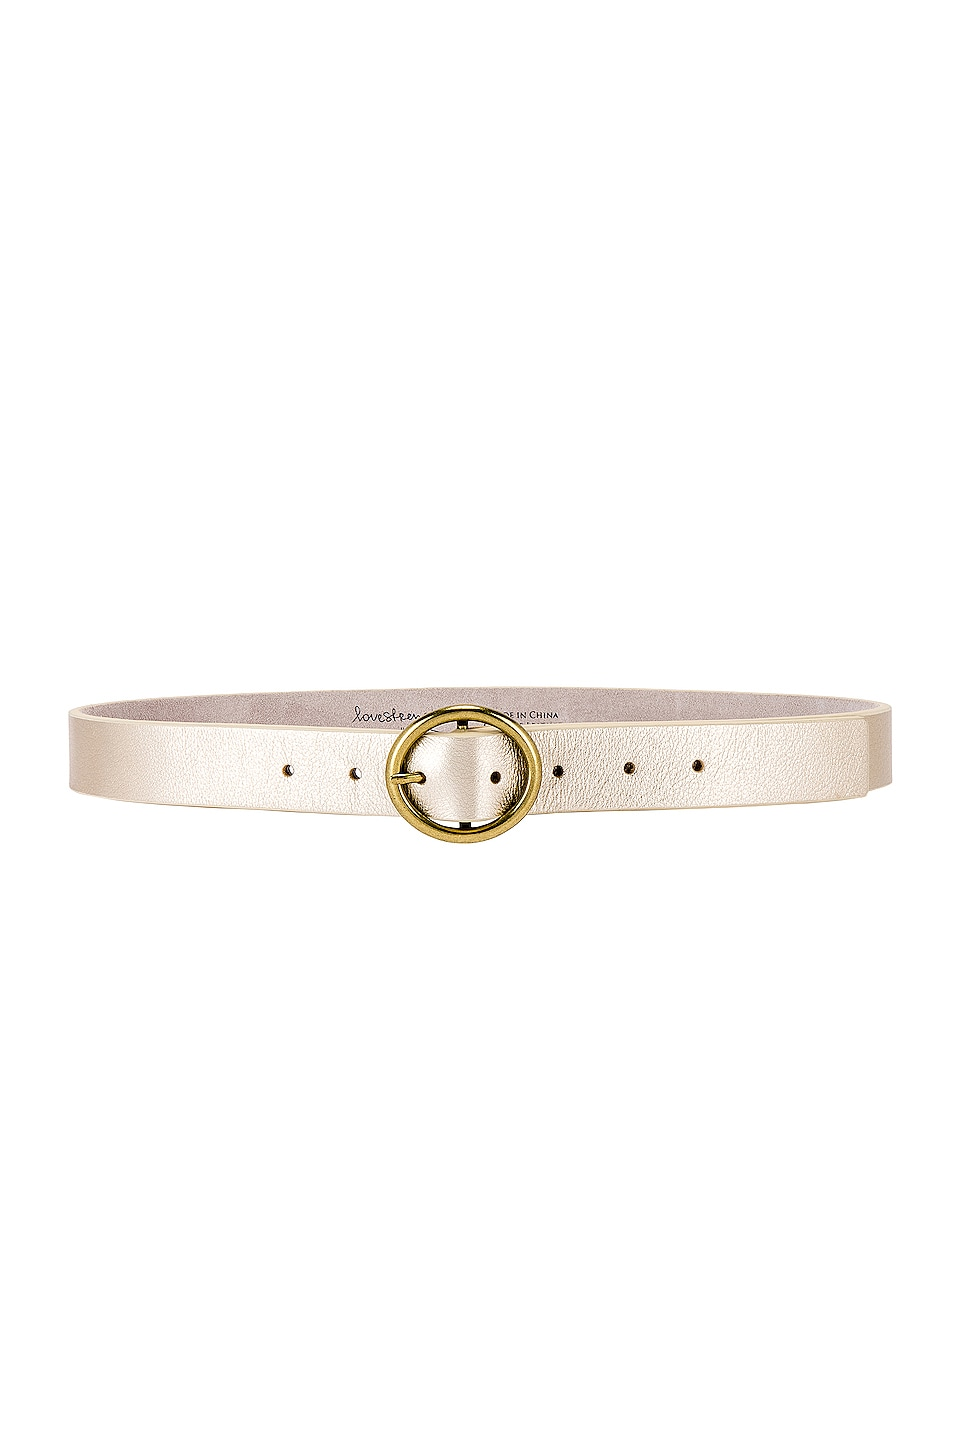 Lovestrength Wylie Belt in Champagne